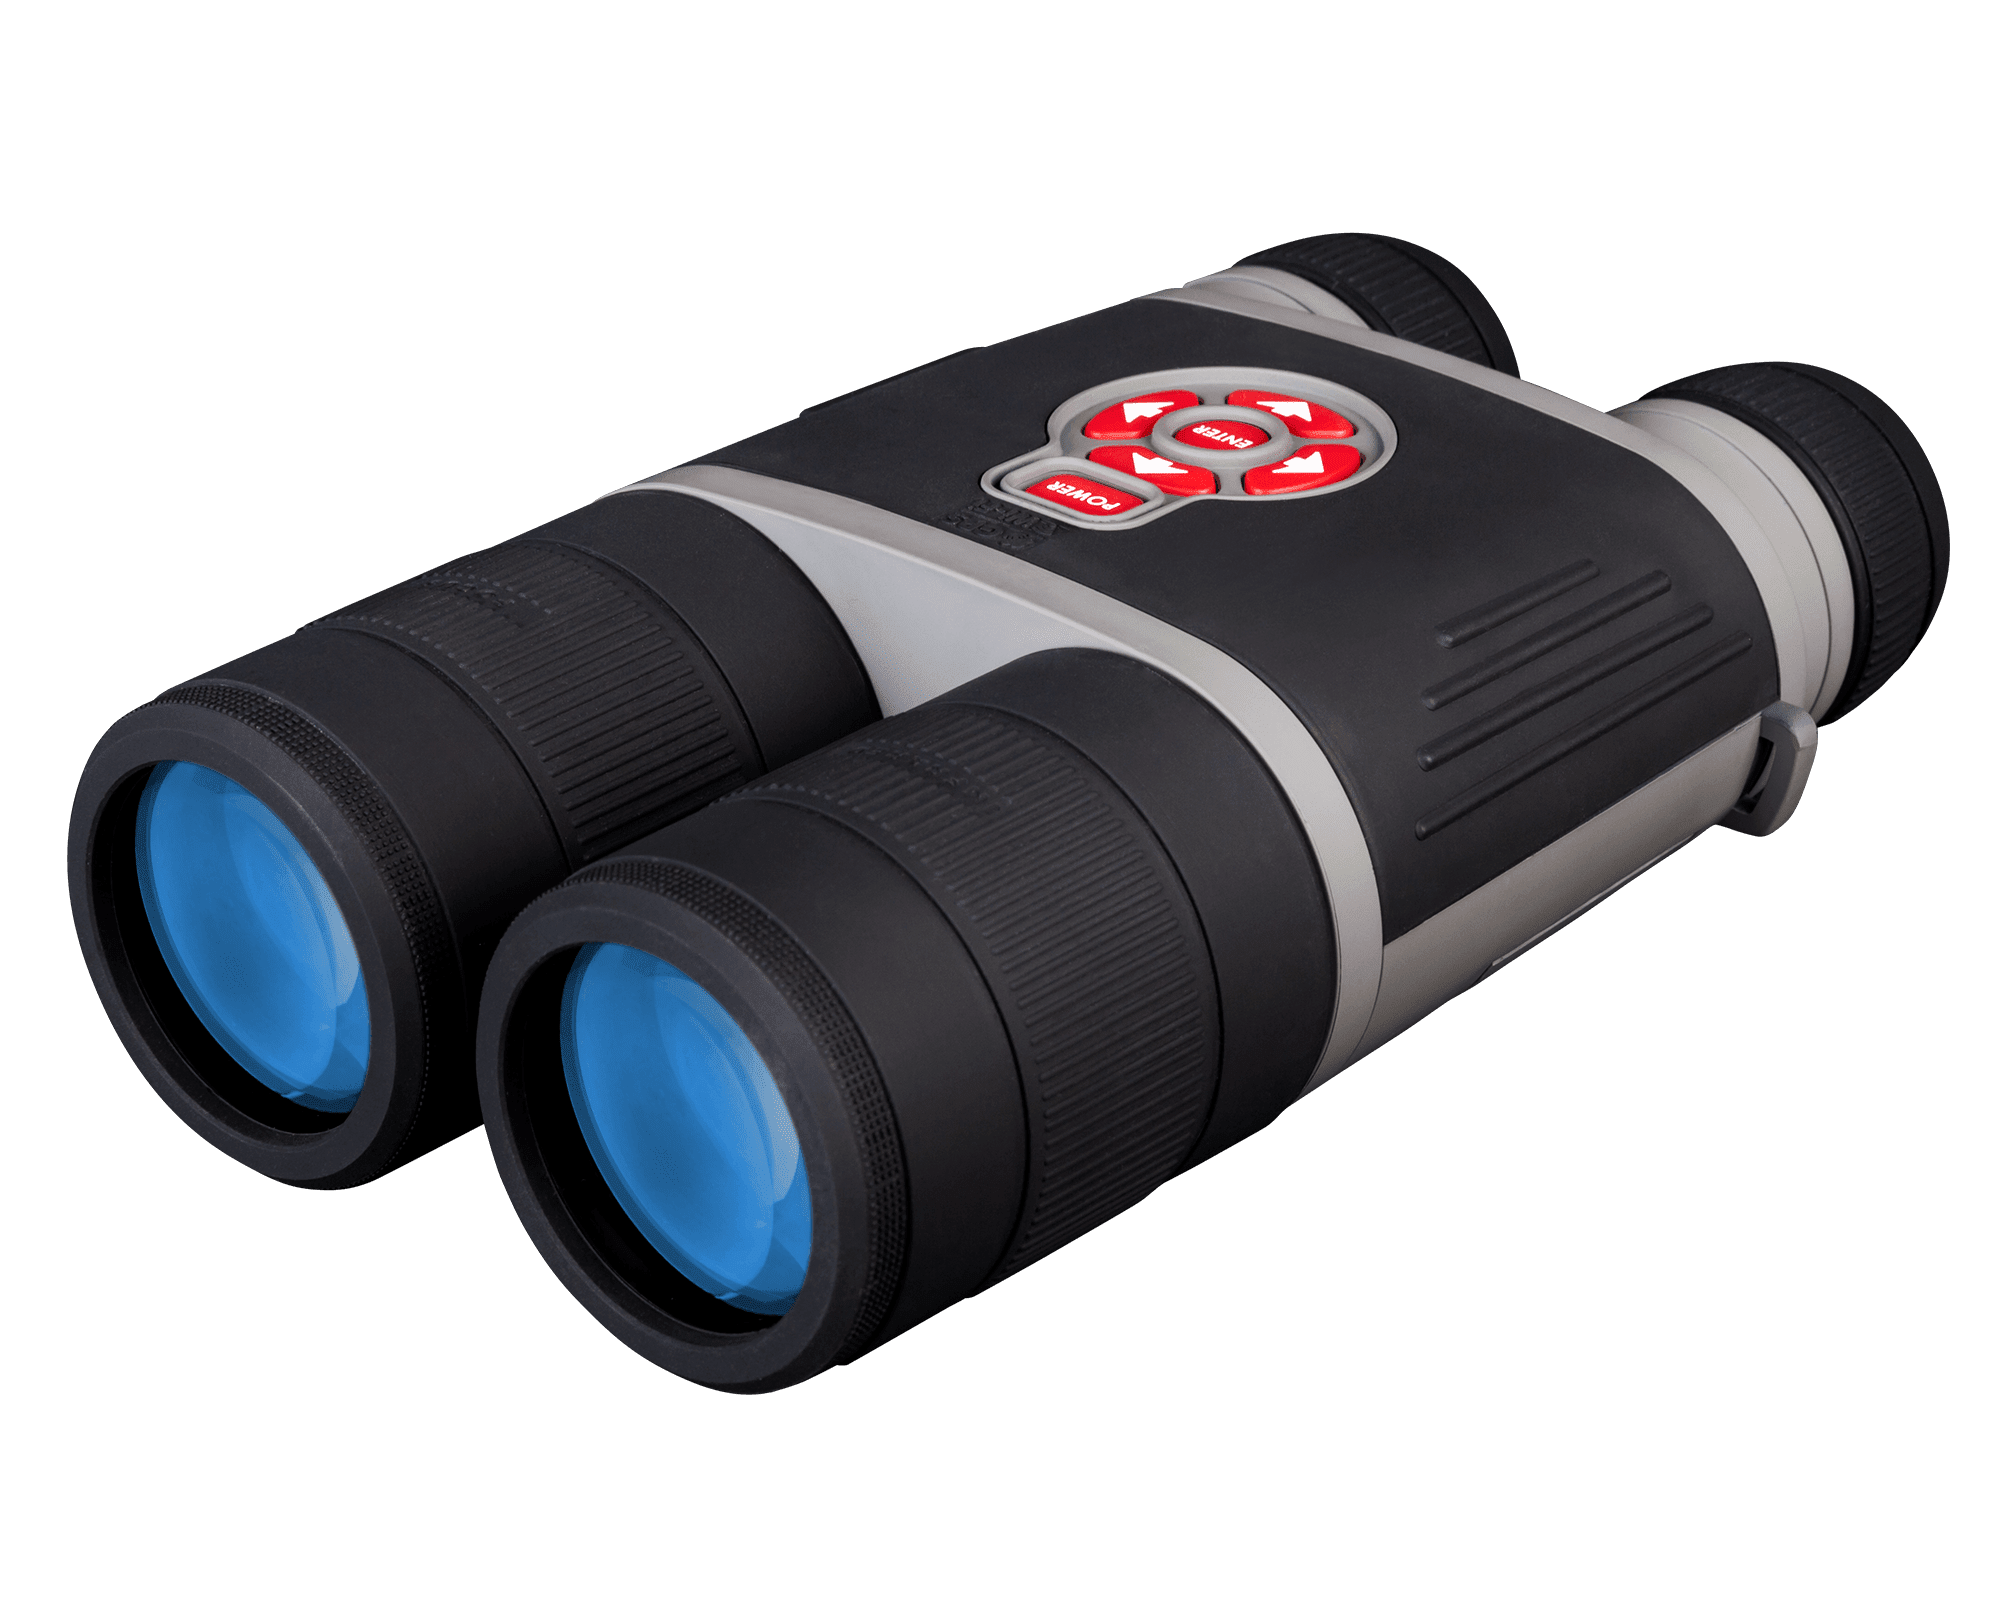 digital binoculars with camera and nv